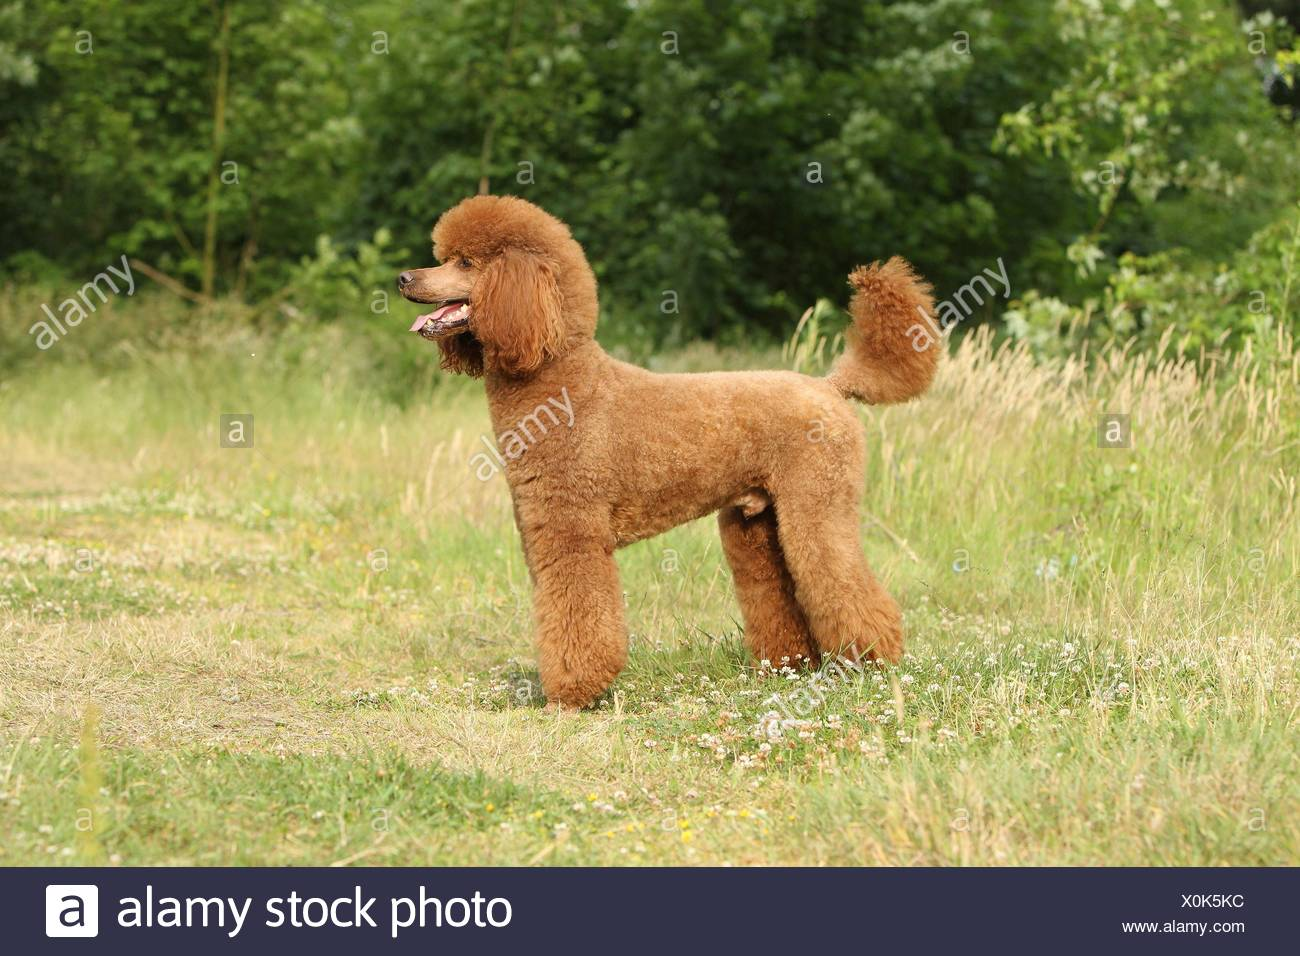 Giant Poodle - Stock Image